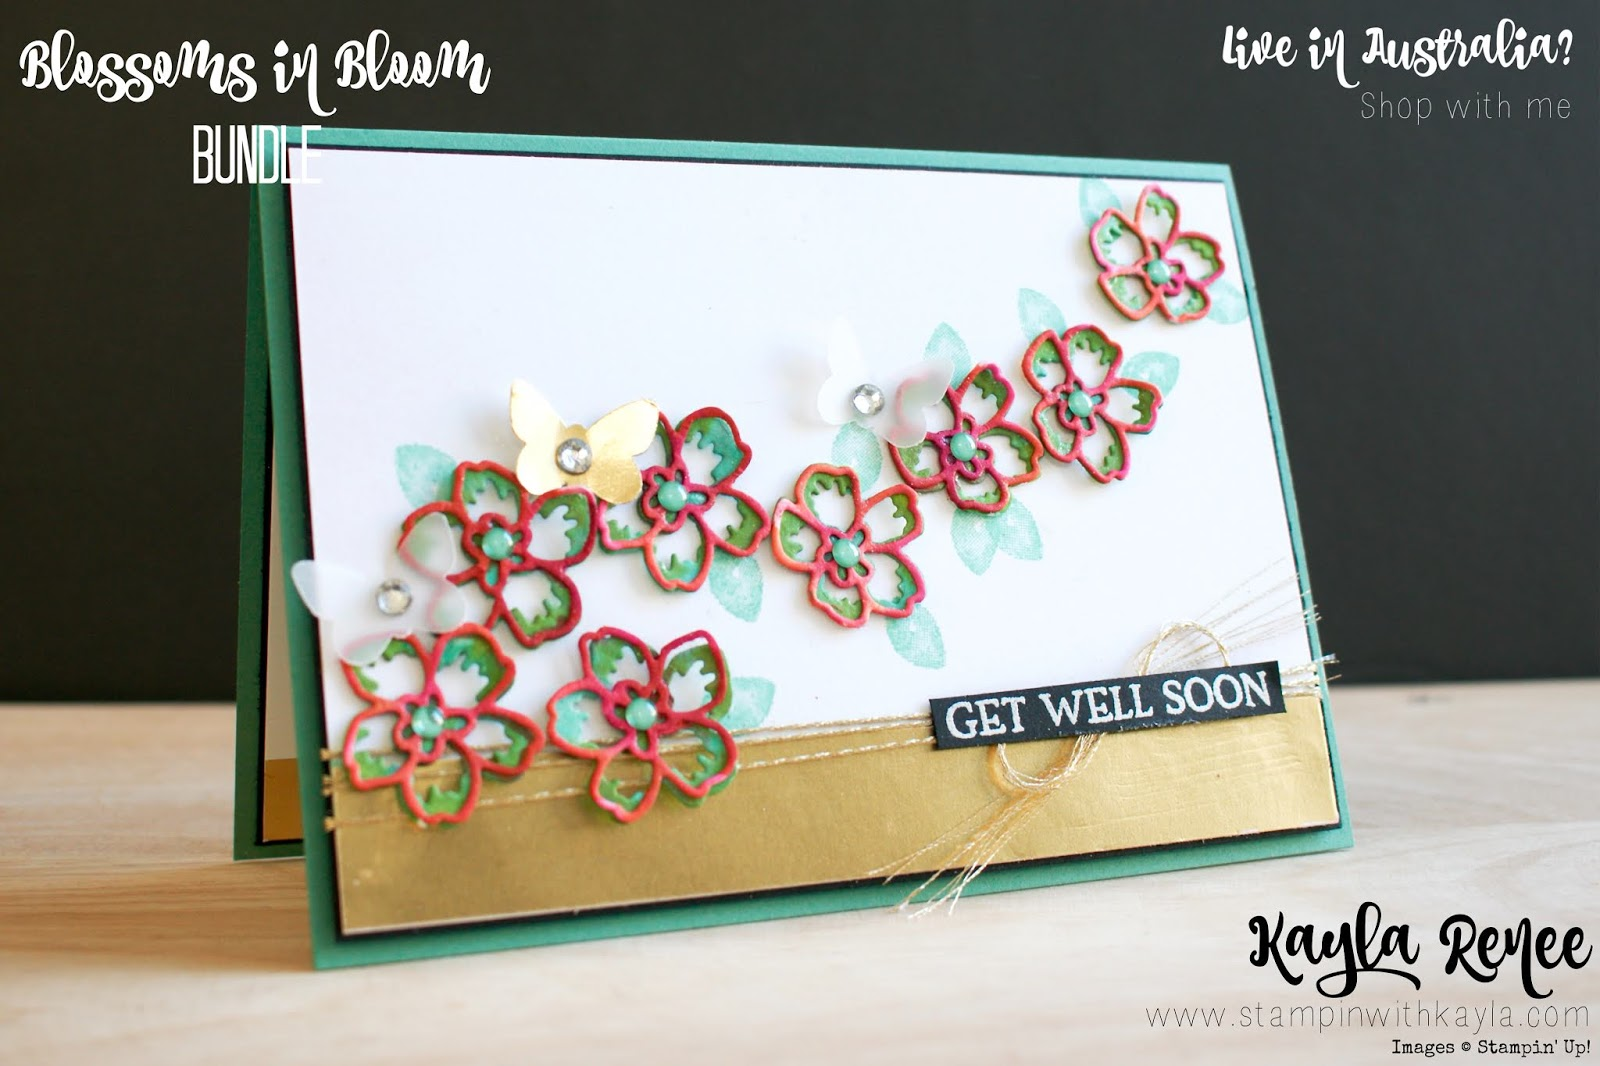 Stampin' Up! Blossoms in Bloom ~ Get Well Soon Card